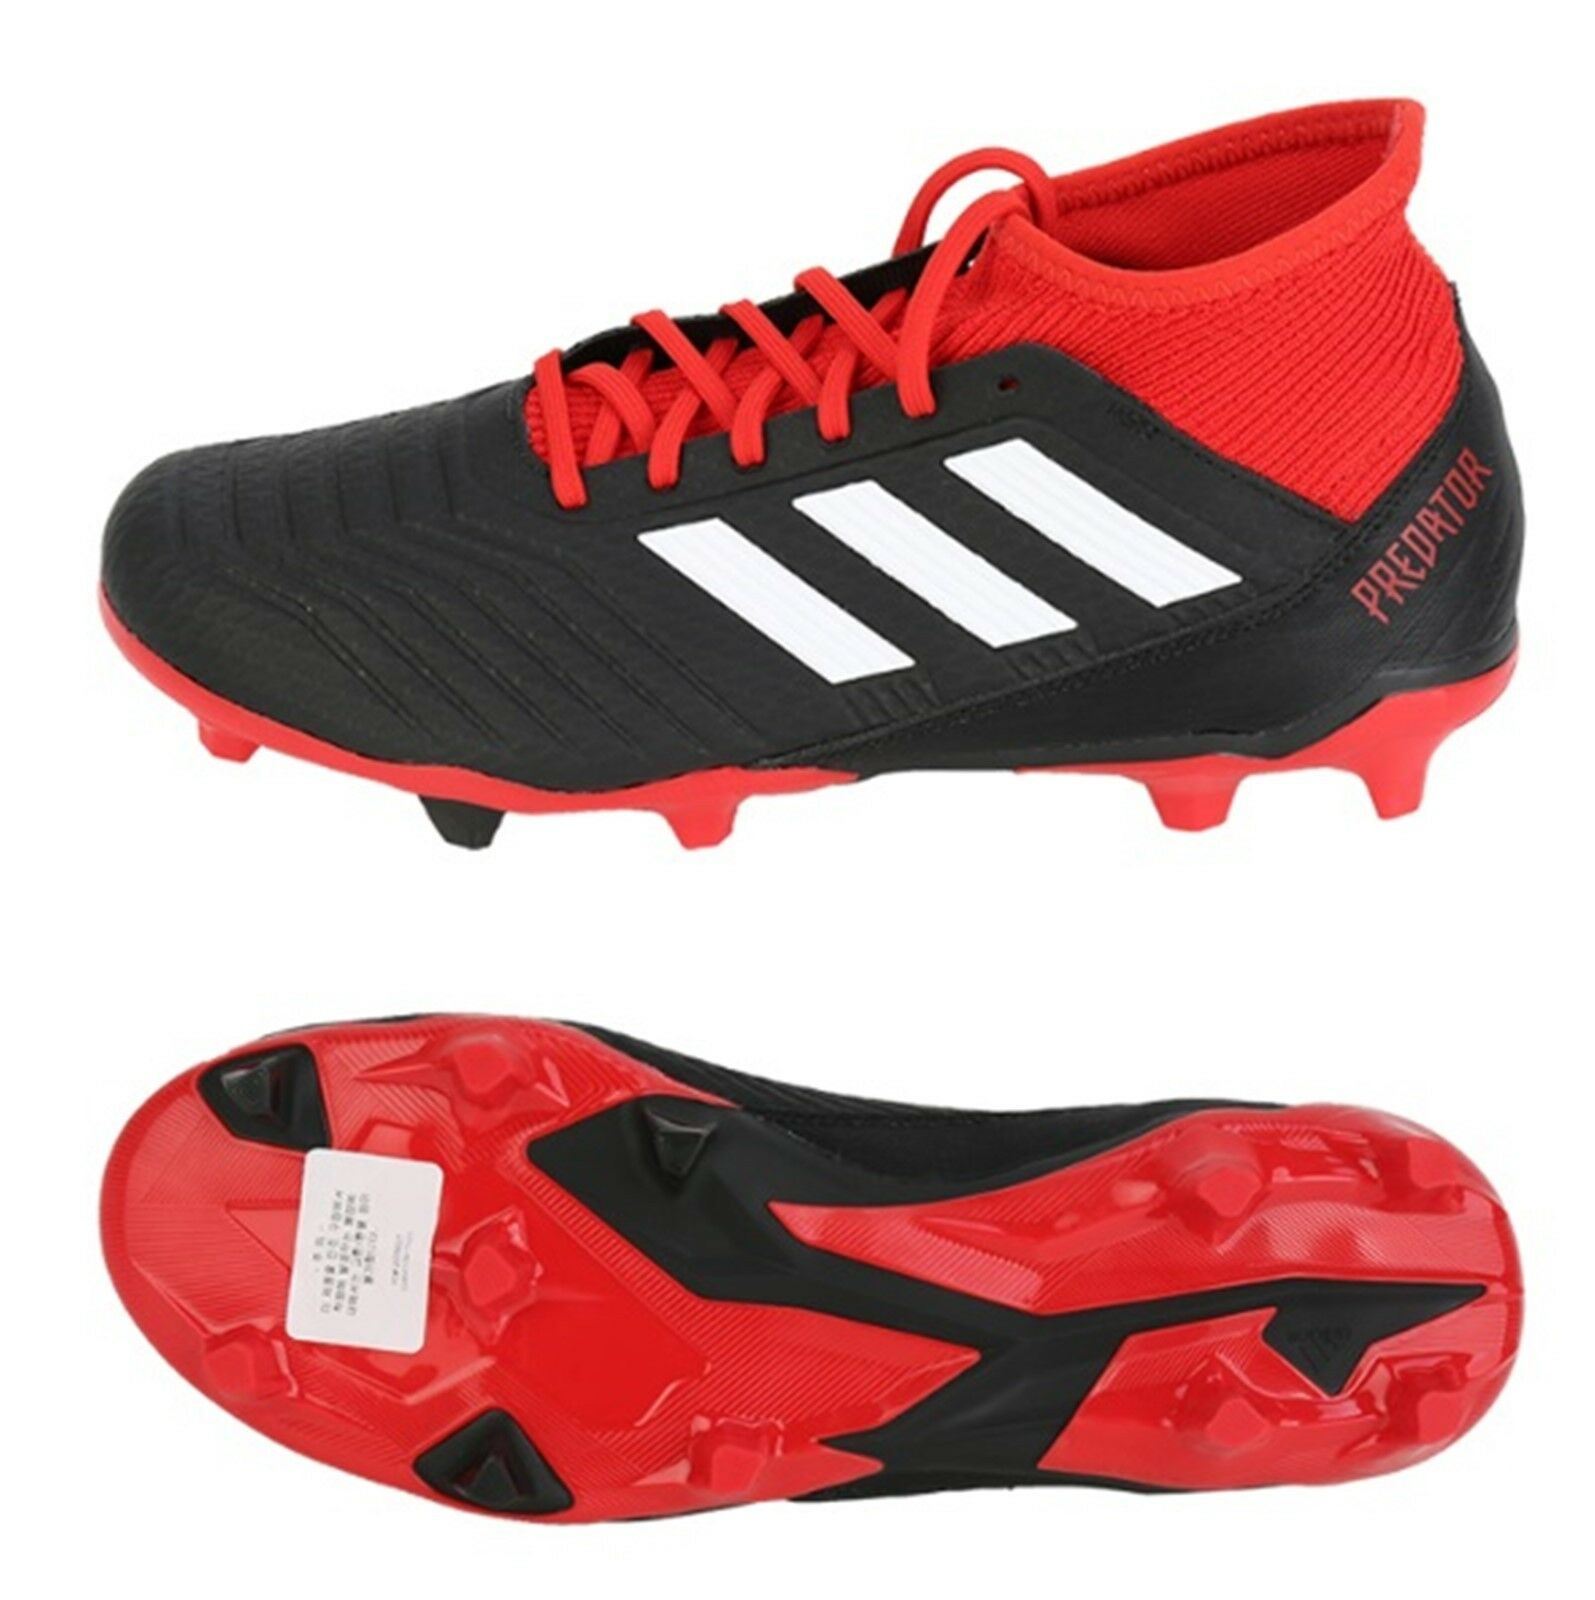 Adidas Men Predator 18.3 FG Cleats Red Soccer Football shoes Boots Spike DB2001